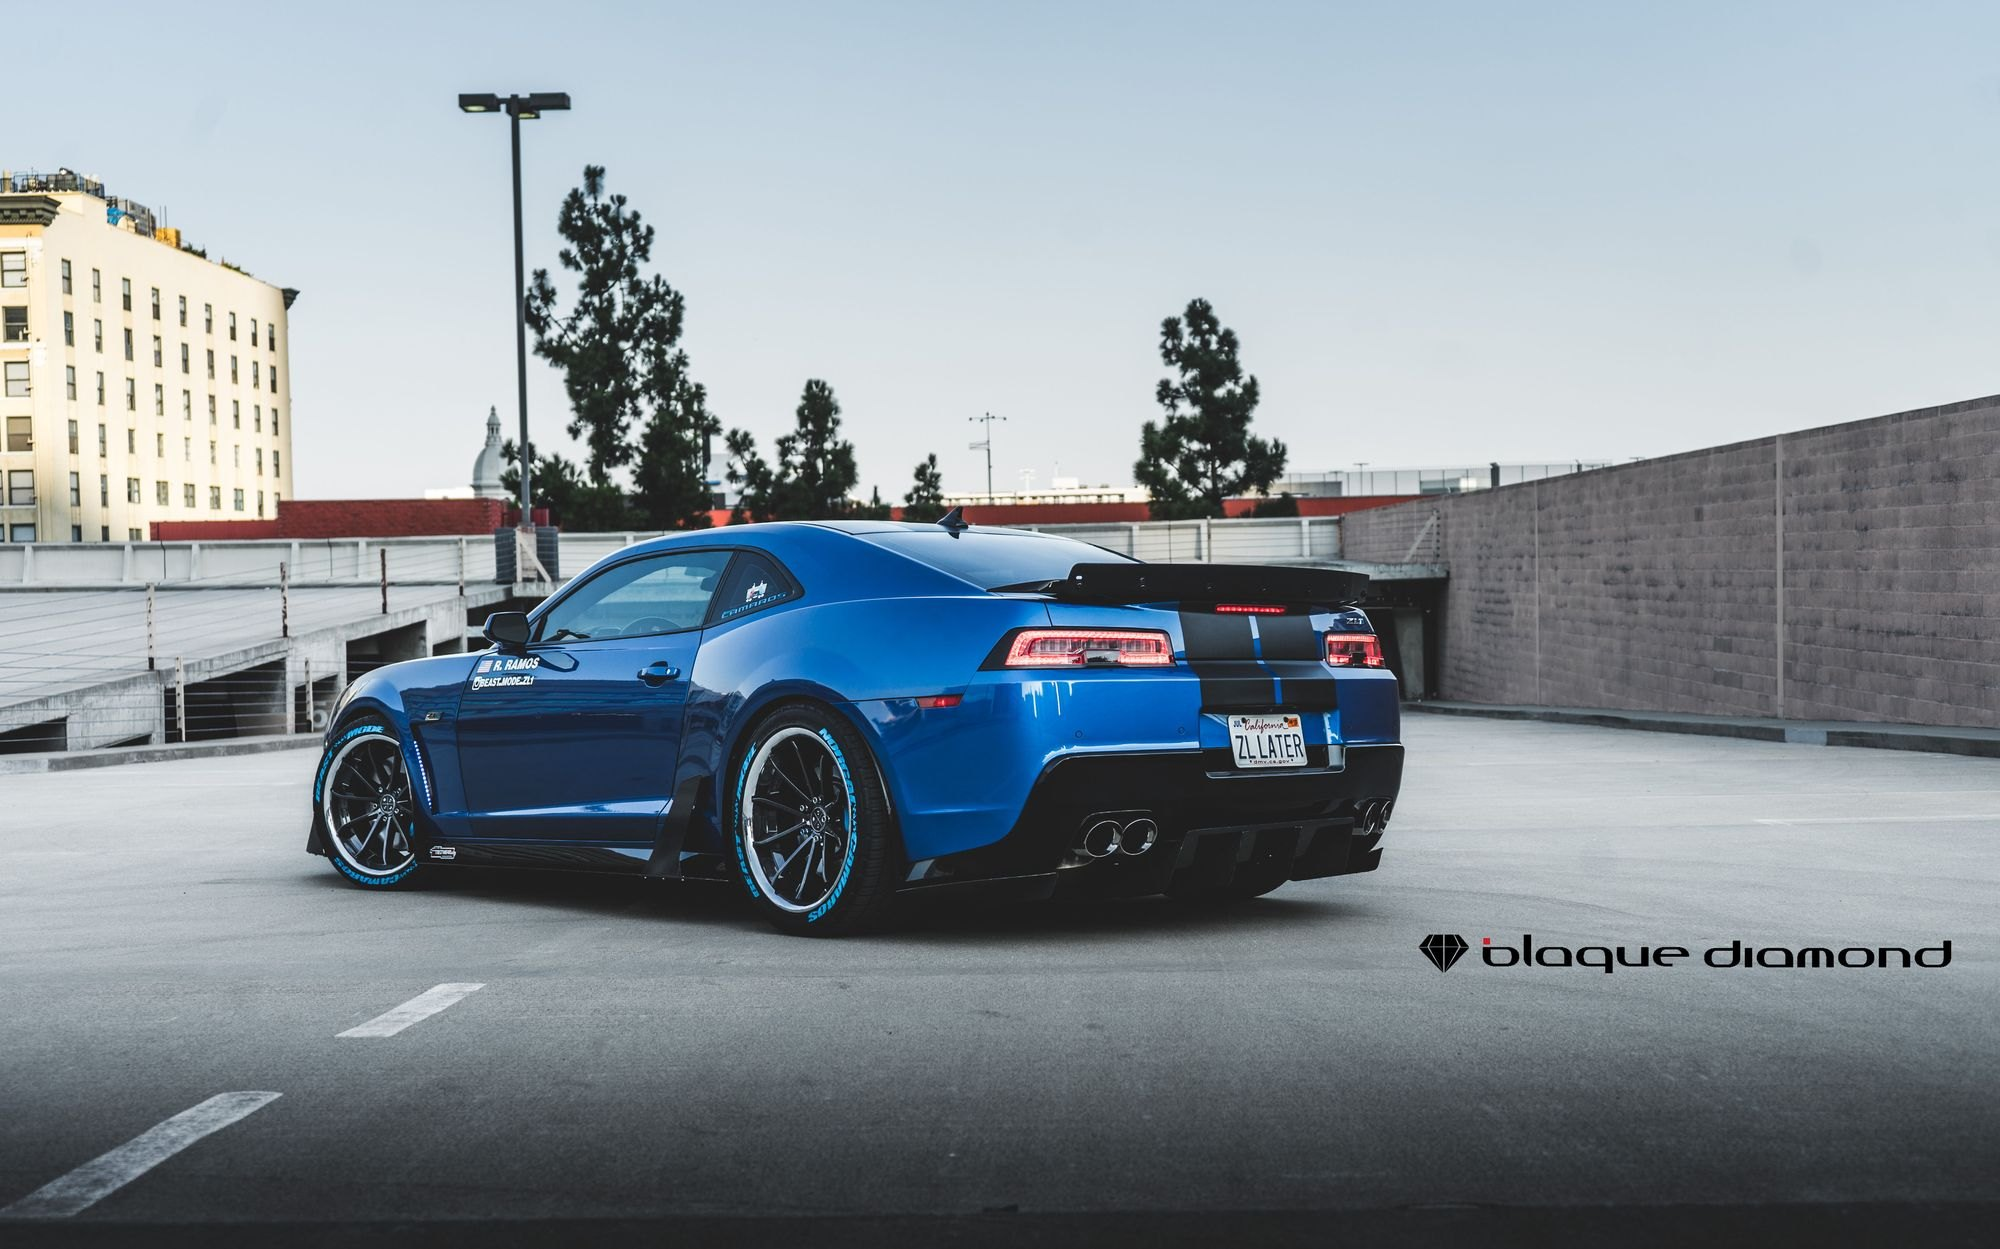 Blue Chevy Camaro ZL1 with Custom Style Rear Spoiler - Photo by Blaque Diamond